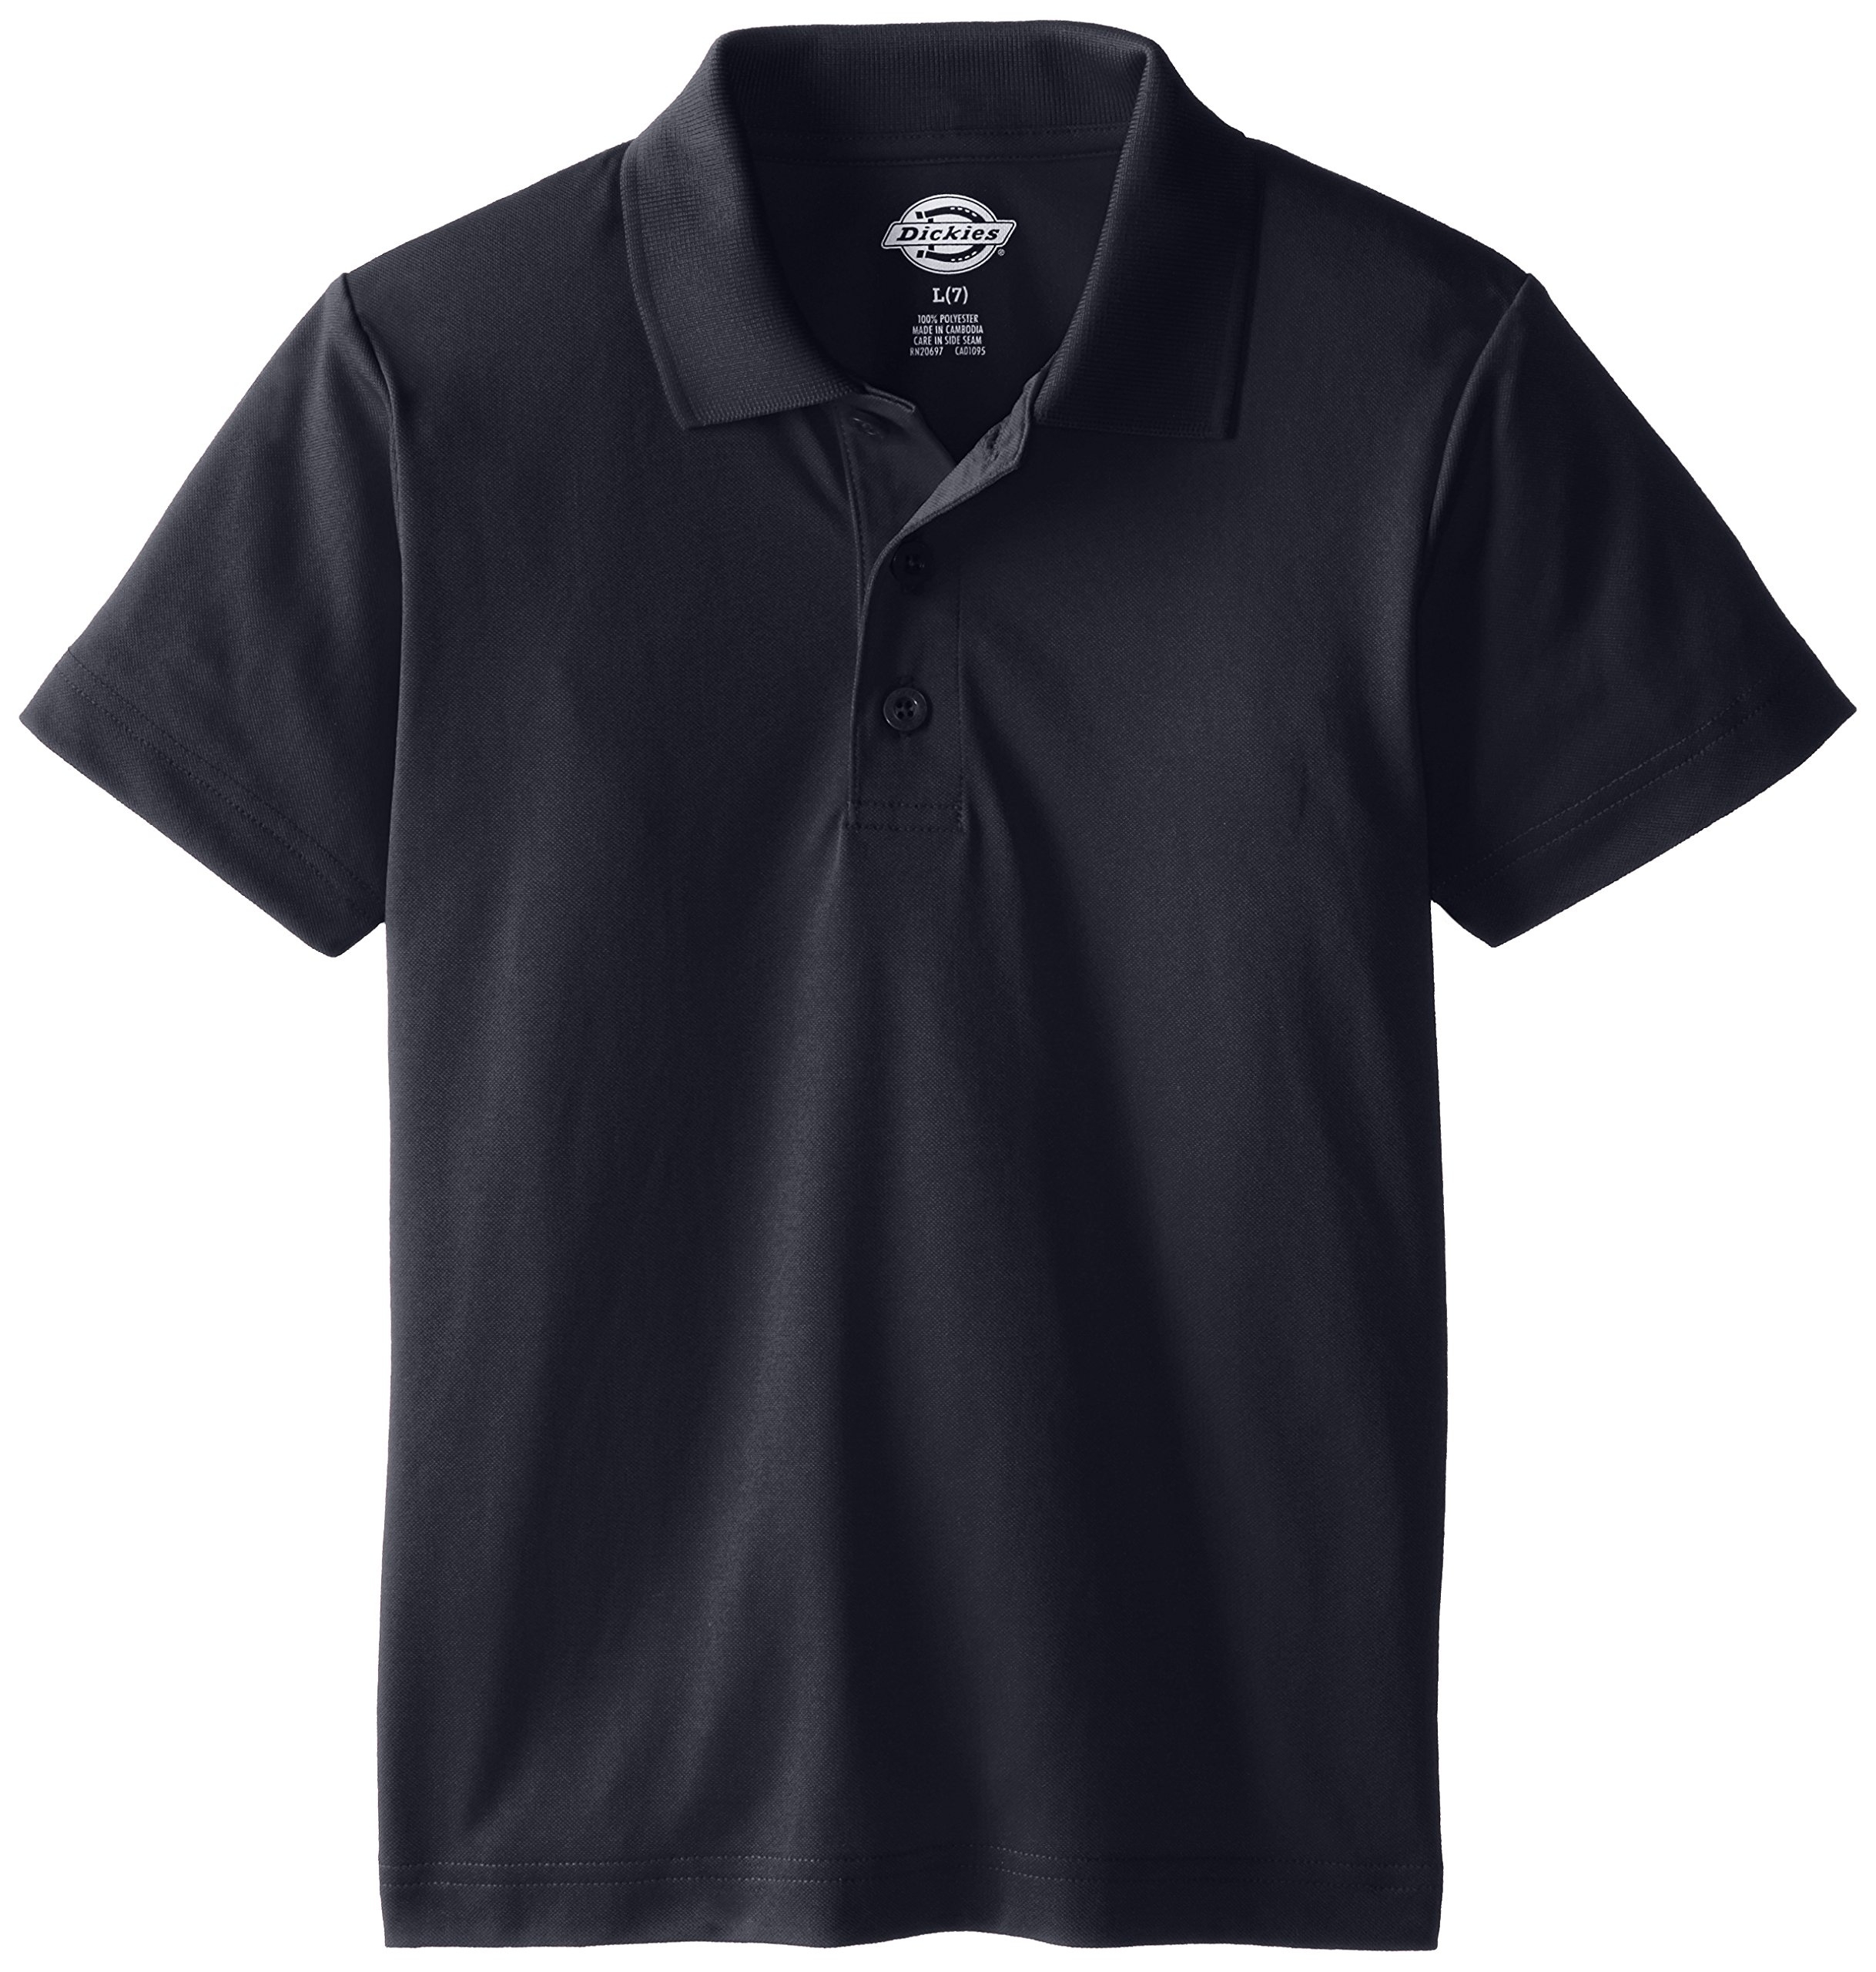 Dickies Big Boys' Short Sleeve Performance Polo Shirt, Black, X-Large (18/20)